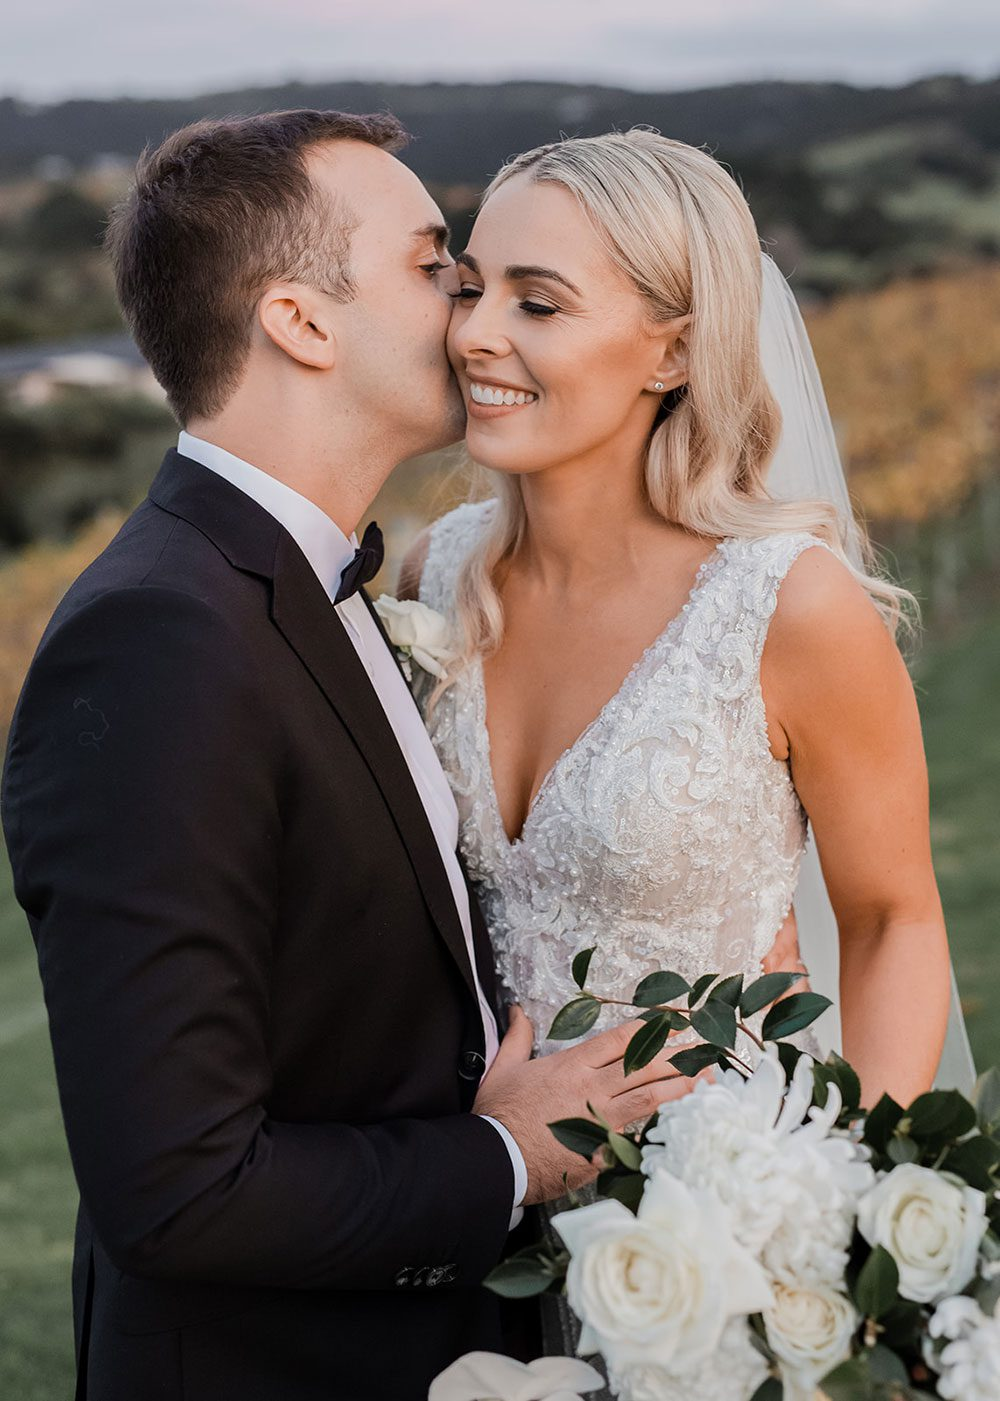 Bride wearing bespoke fitted V-neck gown in beaded lace with front split and sheer beaded overlay by Vinka bridal boutique NZ- close up groom kissing bride on cheek